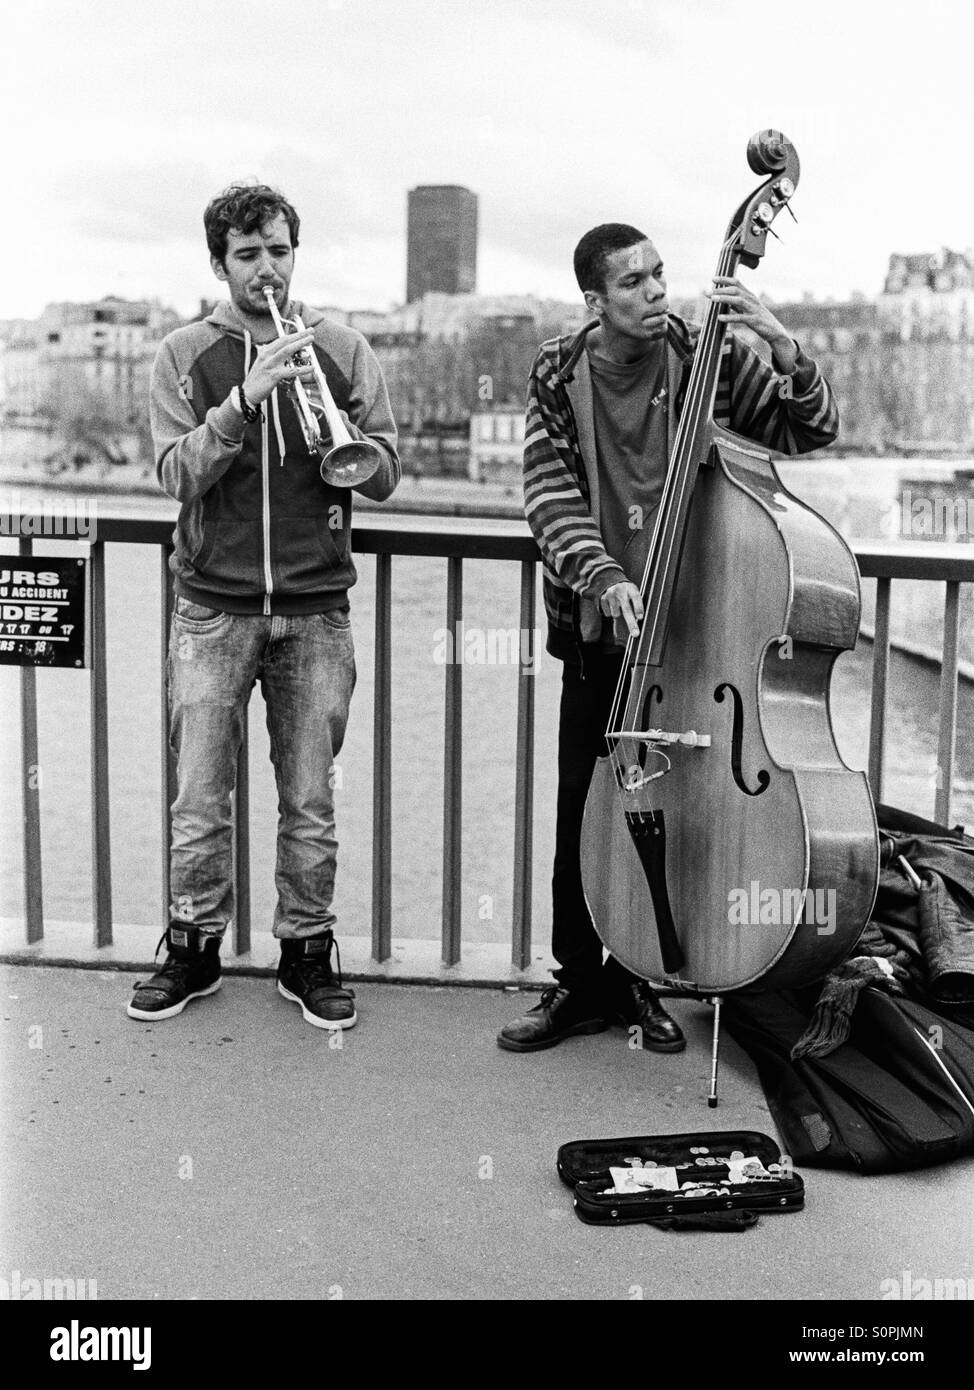 Two buskers on the Pont Saint-Louis in Paris, France - Stock Image